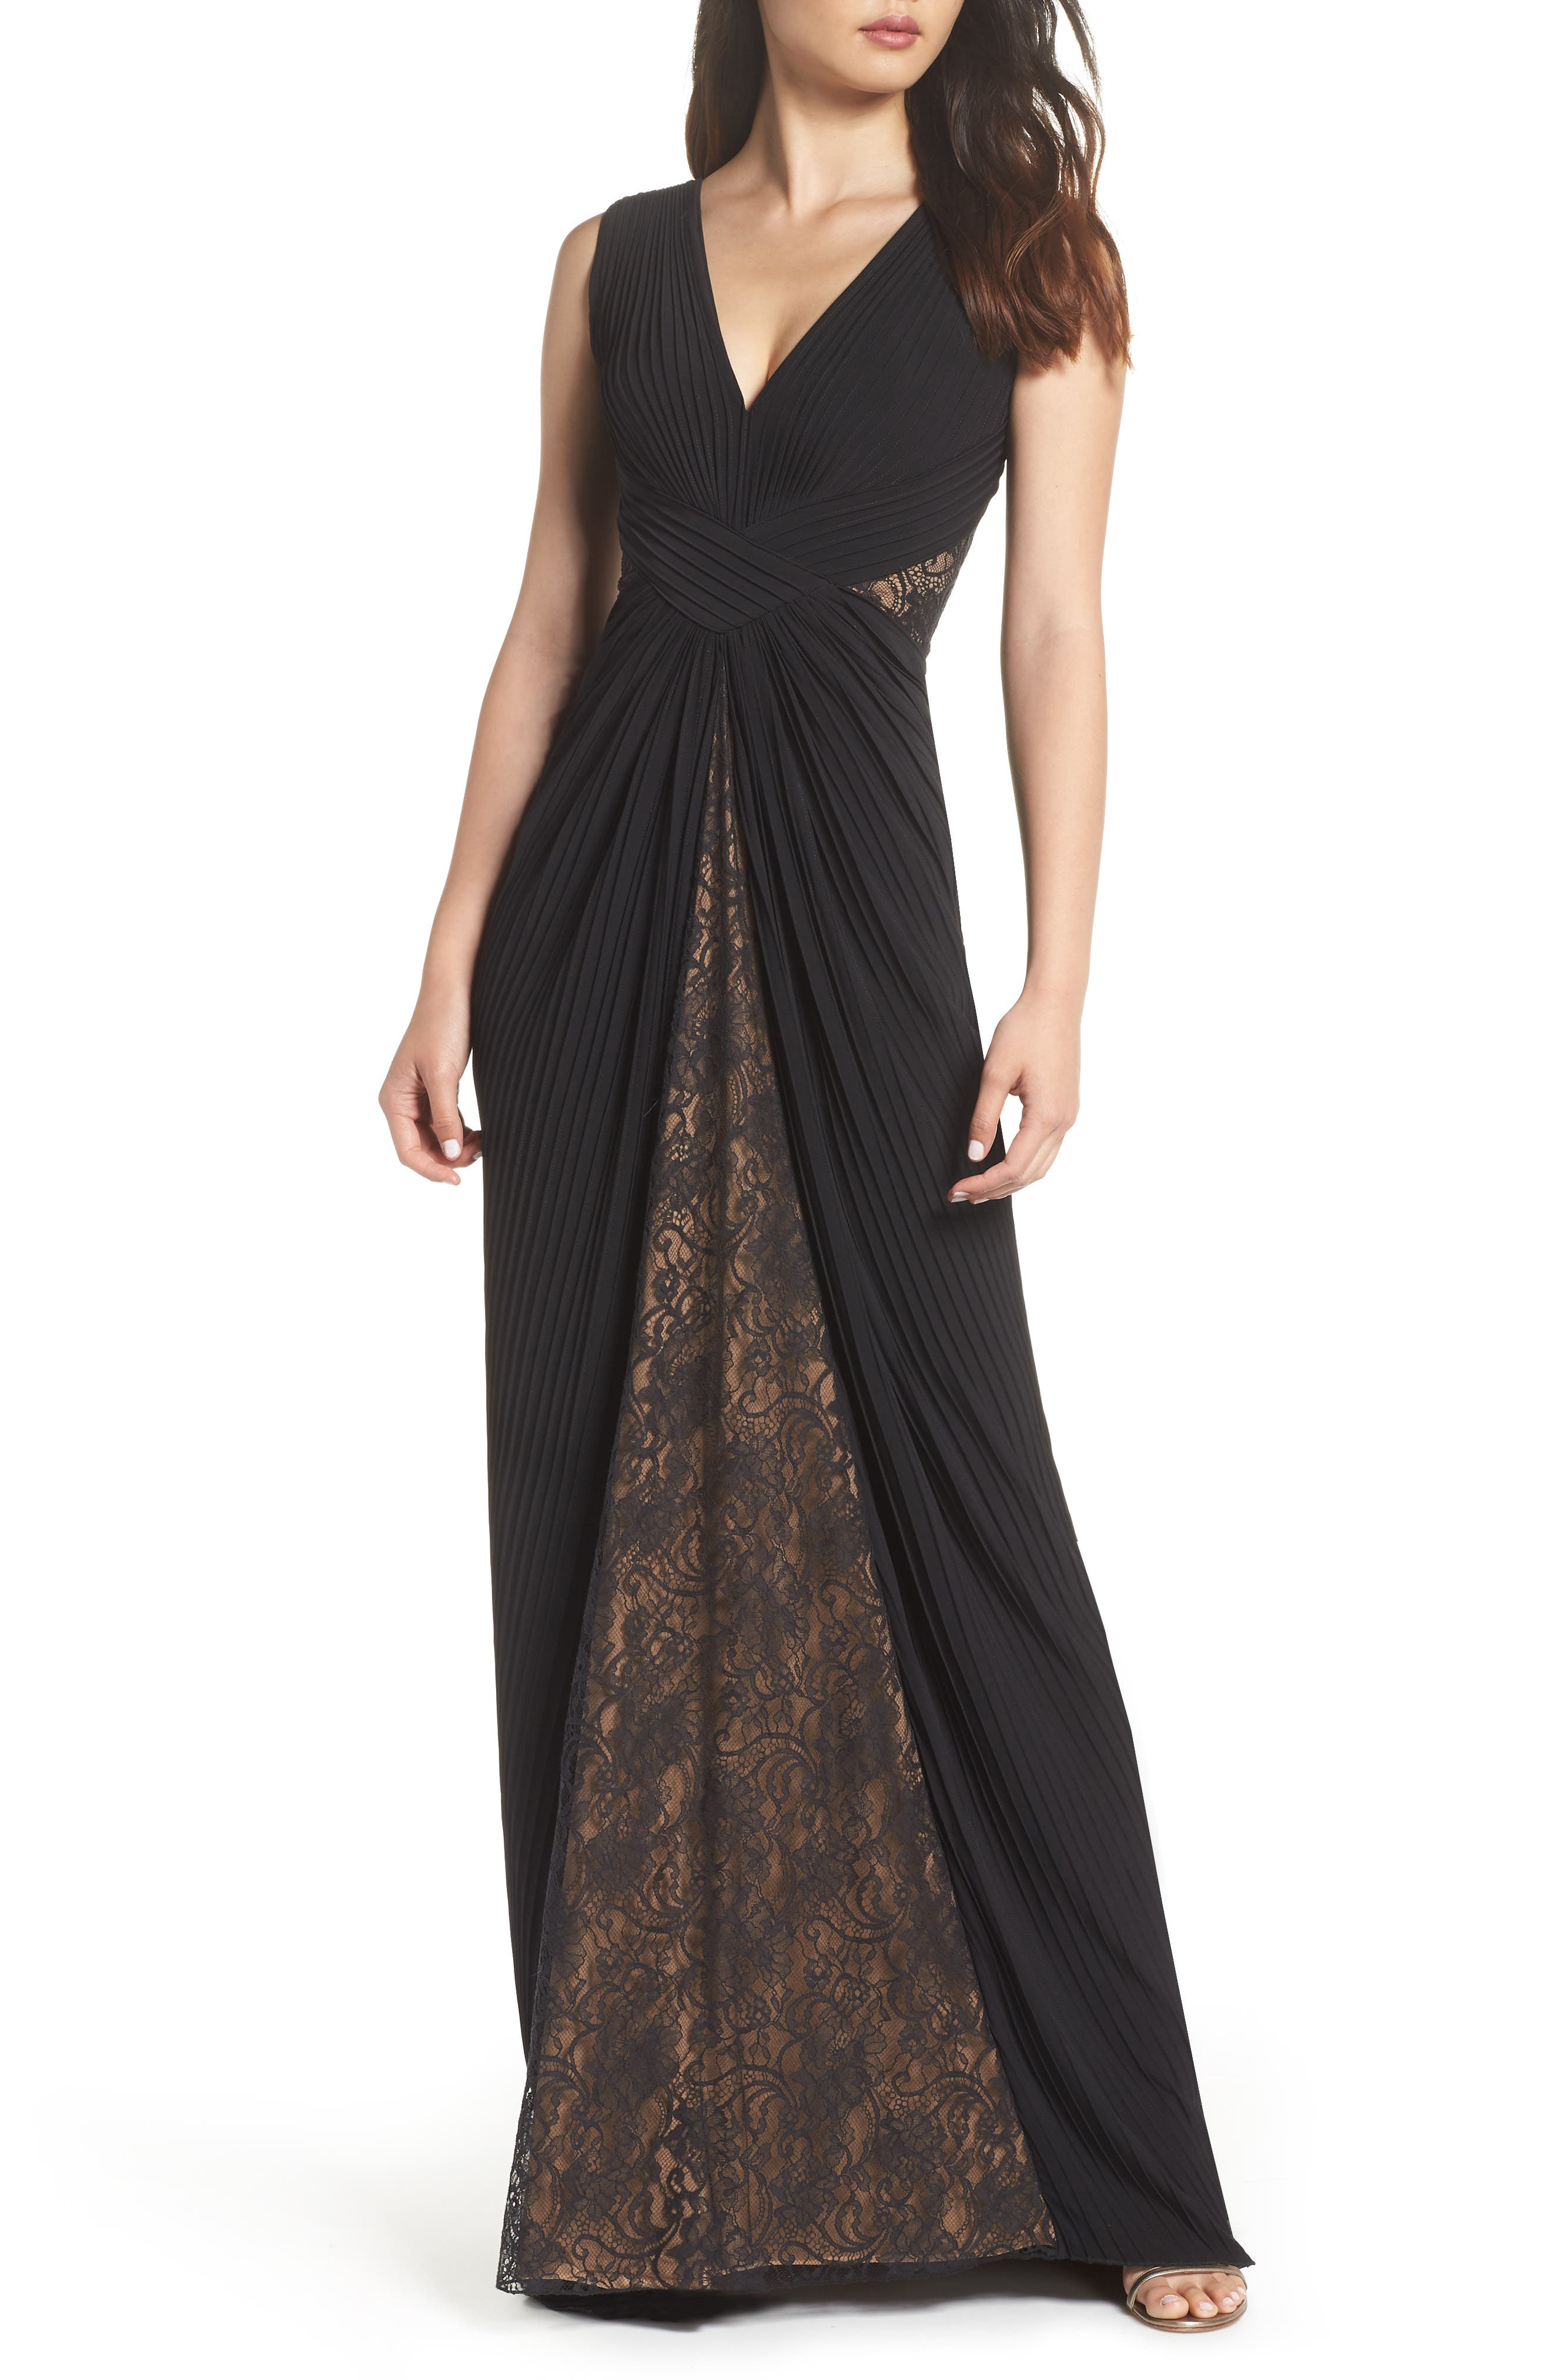 TADASHI SHOJI Pintuck Jersey & Lace V-Neck Gown in Black/ Nude